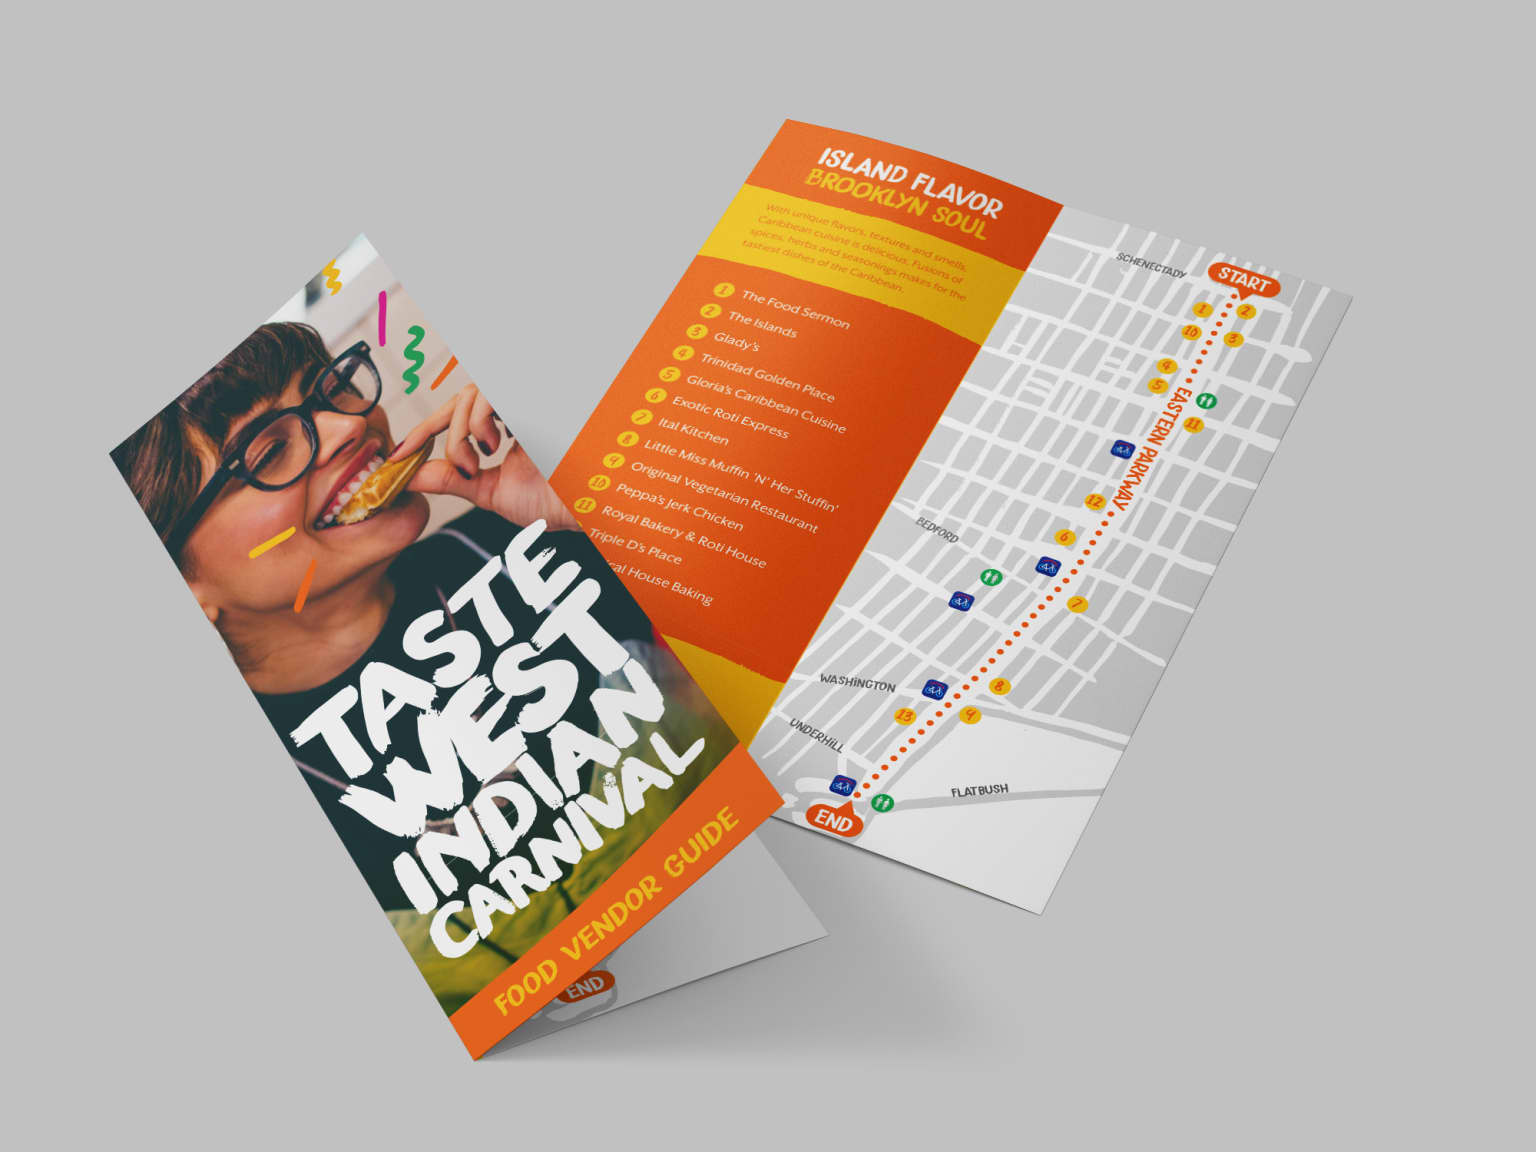 West Indian Carnival Visual Identity